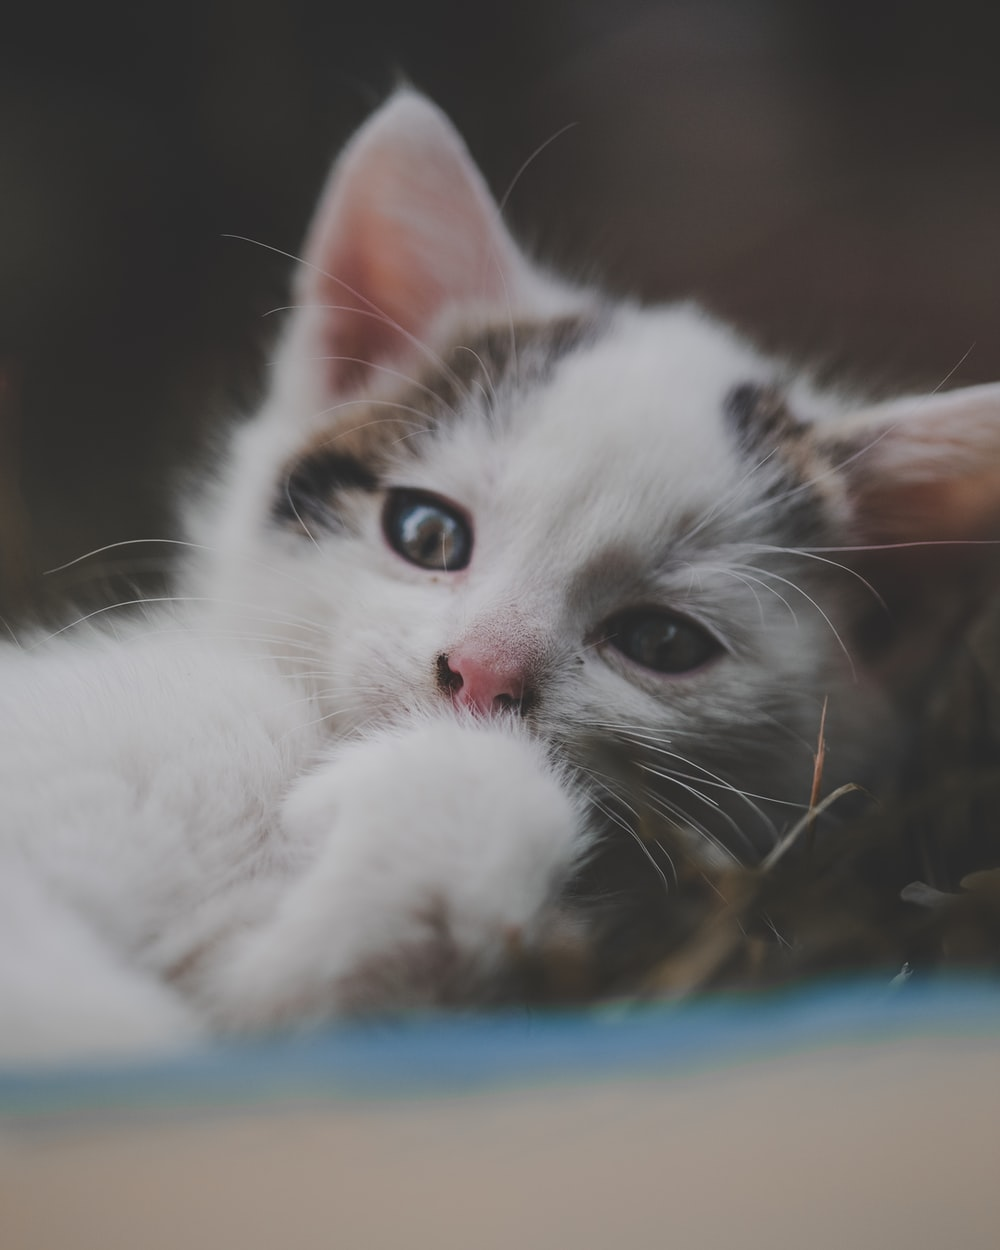 white and brown cat lying on blue textile